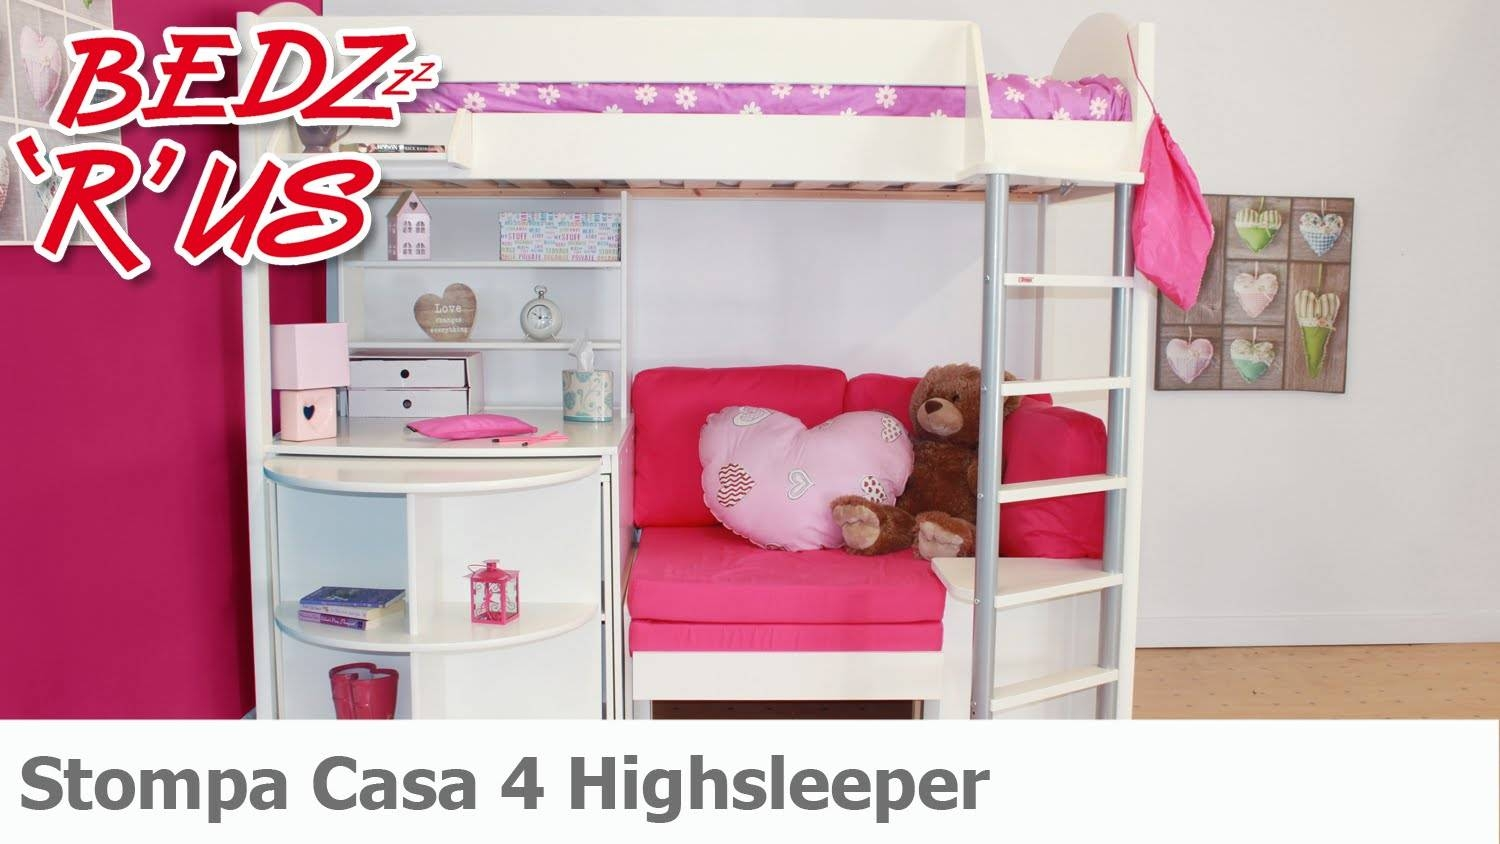 Stompa Casa 4 Highsleeper Bed - Bedzrus - Youtube intended for High Sleeper With Sofa And Desk (Image 18 of 25)